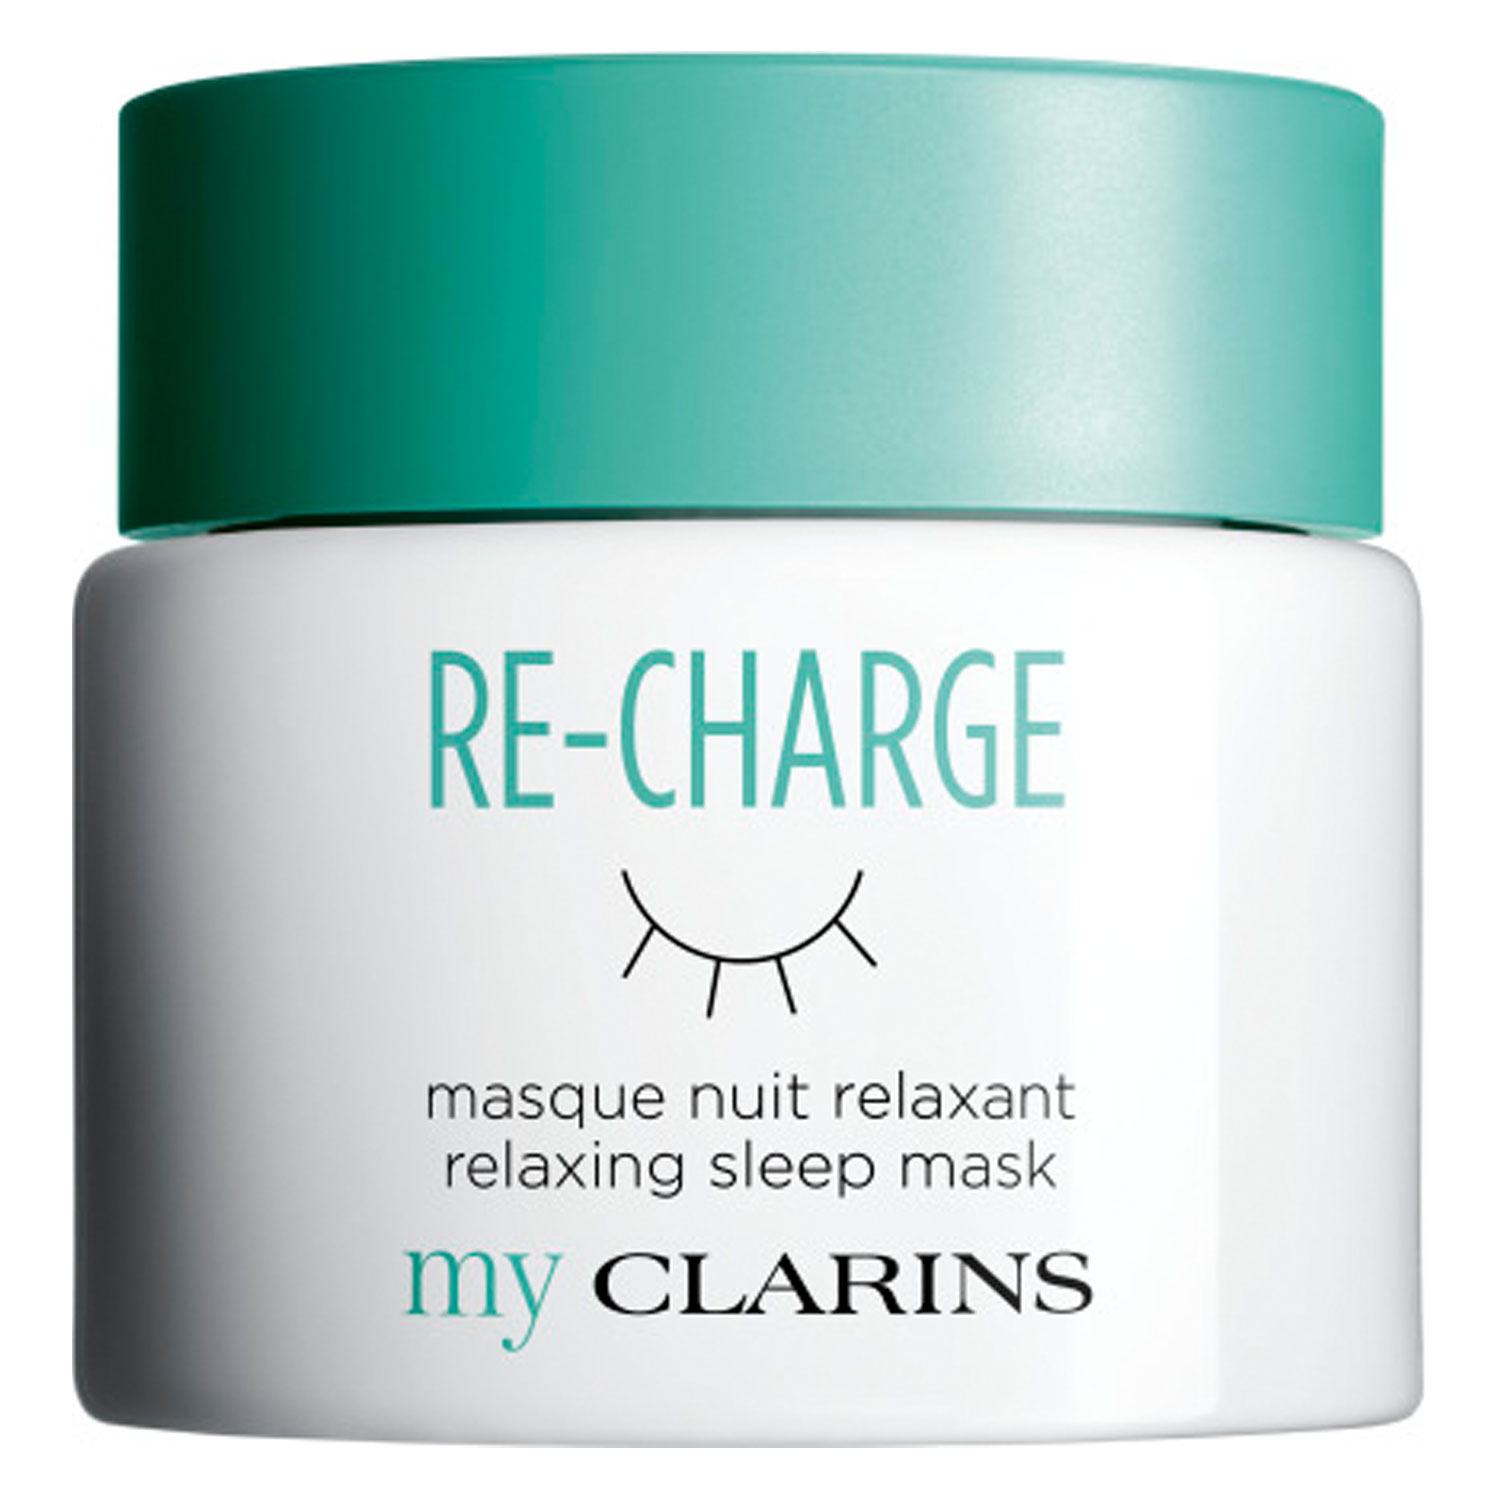 myCLARINS - RE-CHARGE Relaxing Sleep Mask - 48g